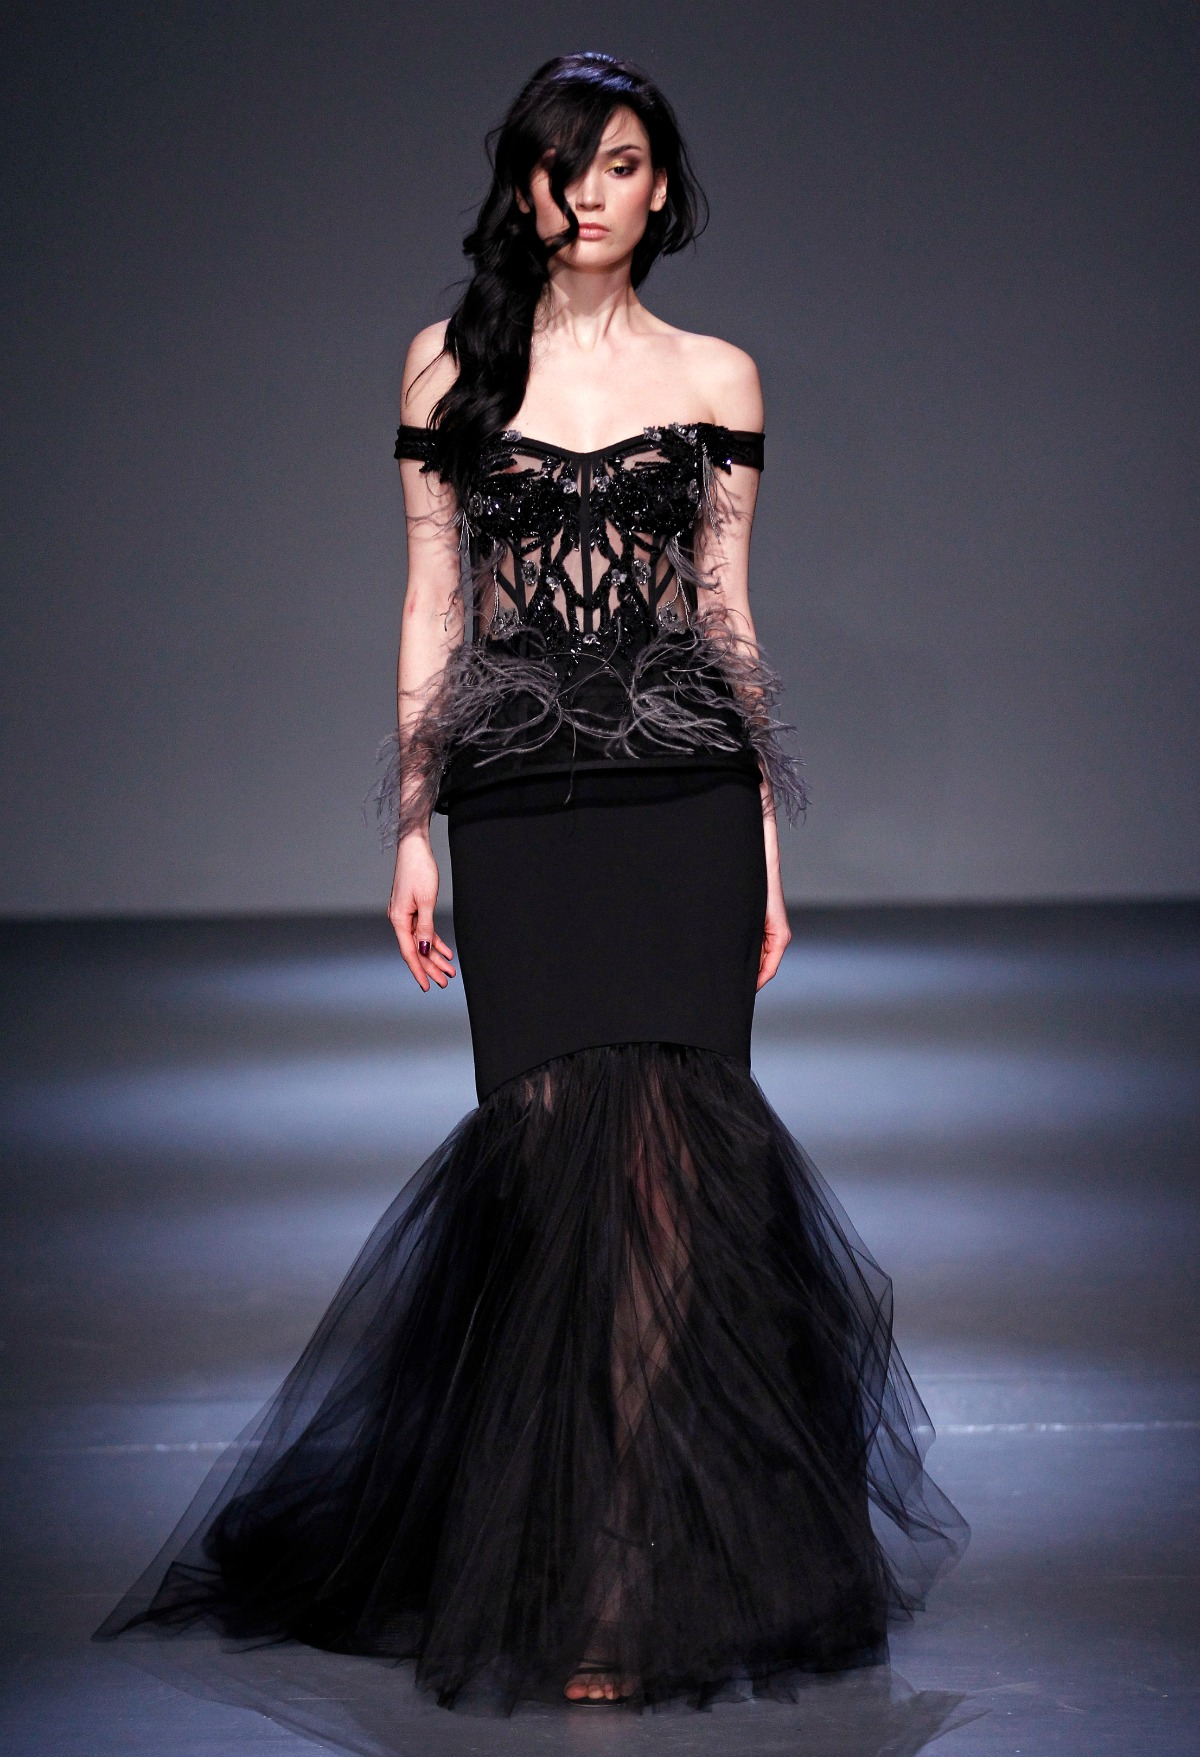 Pamella Roland Fall 2018 Runway I Black Tulle Mermaid Gown #NYFW #DreaminLace